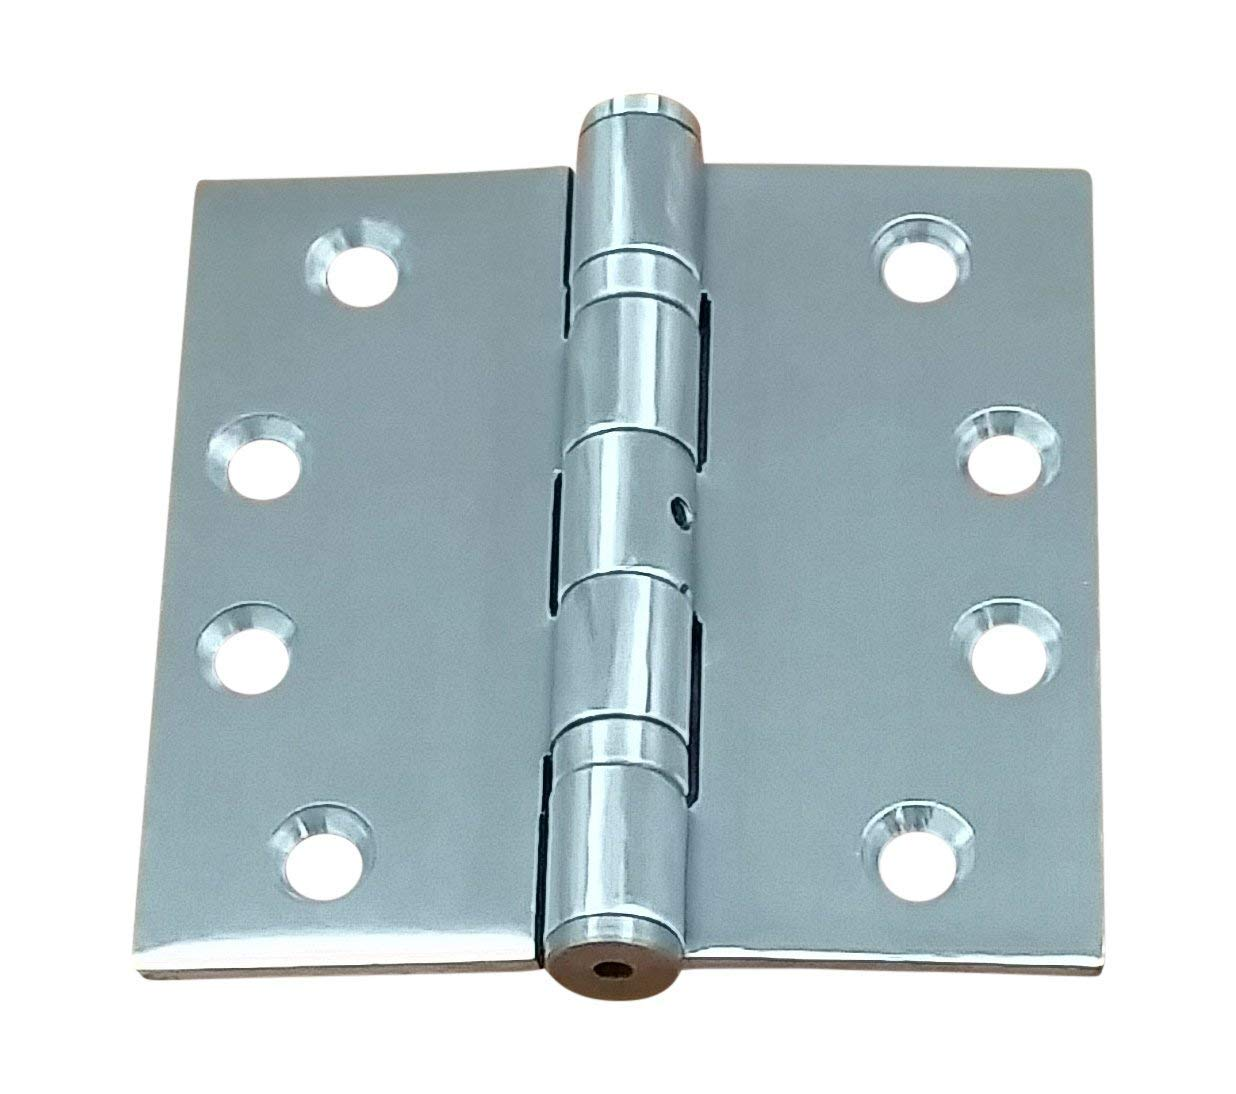 Commercial Ball Bearing Stainless Steel Door Hinges, 4.5'' X 4.5'' Square - NRP - 2 Pack